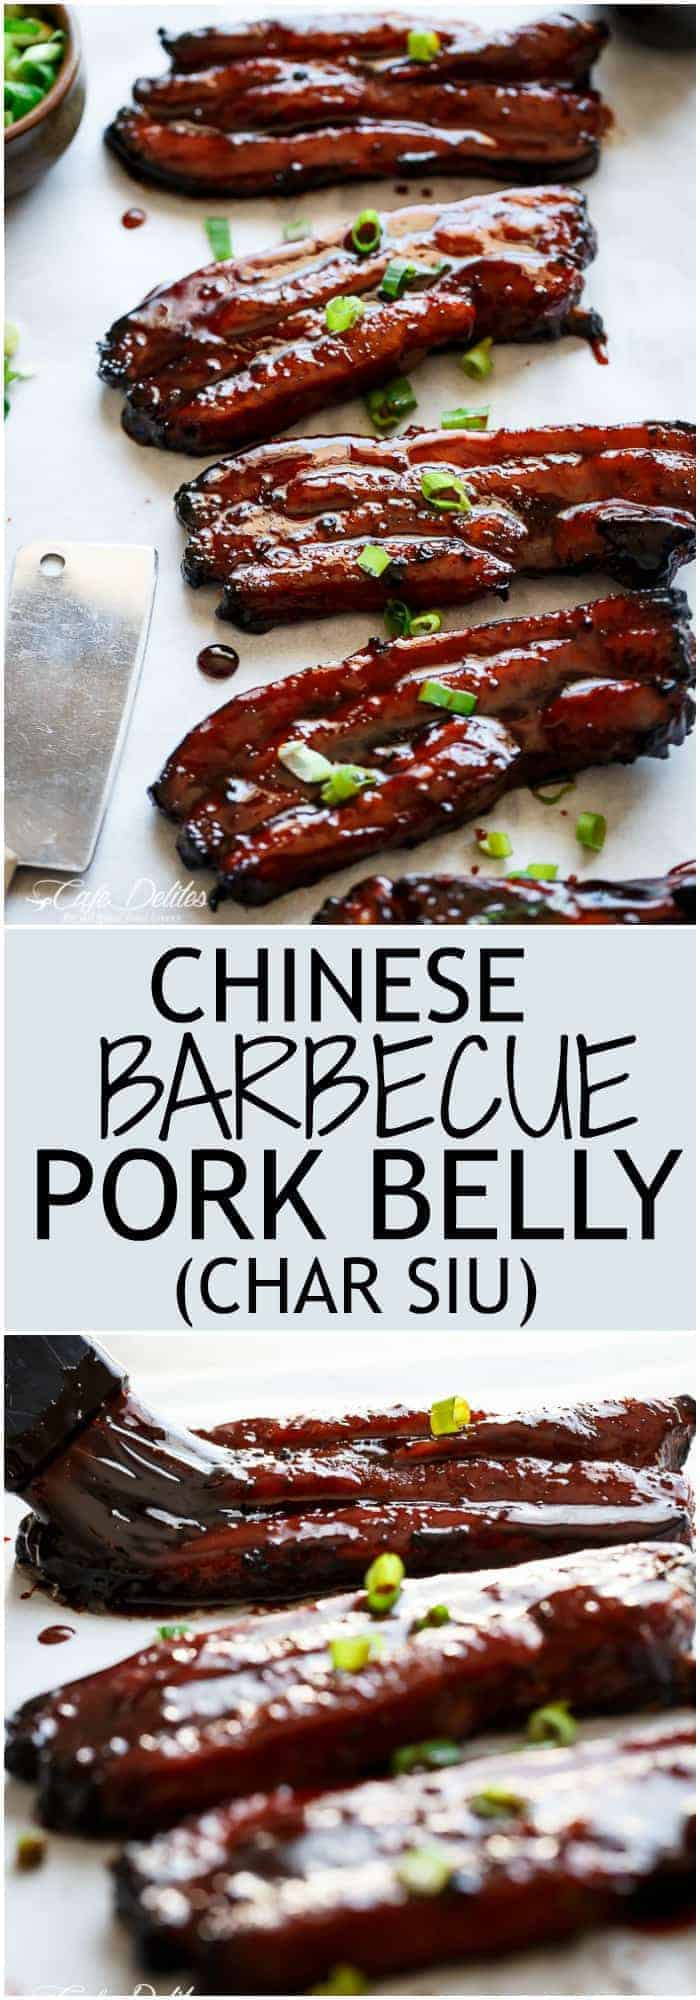 Sticky chinese belly pork recipe